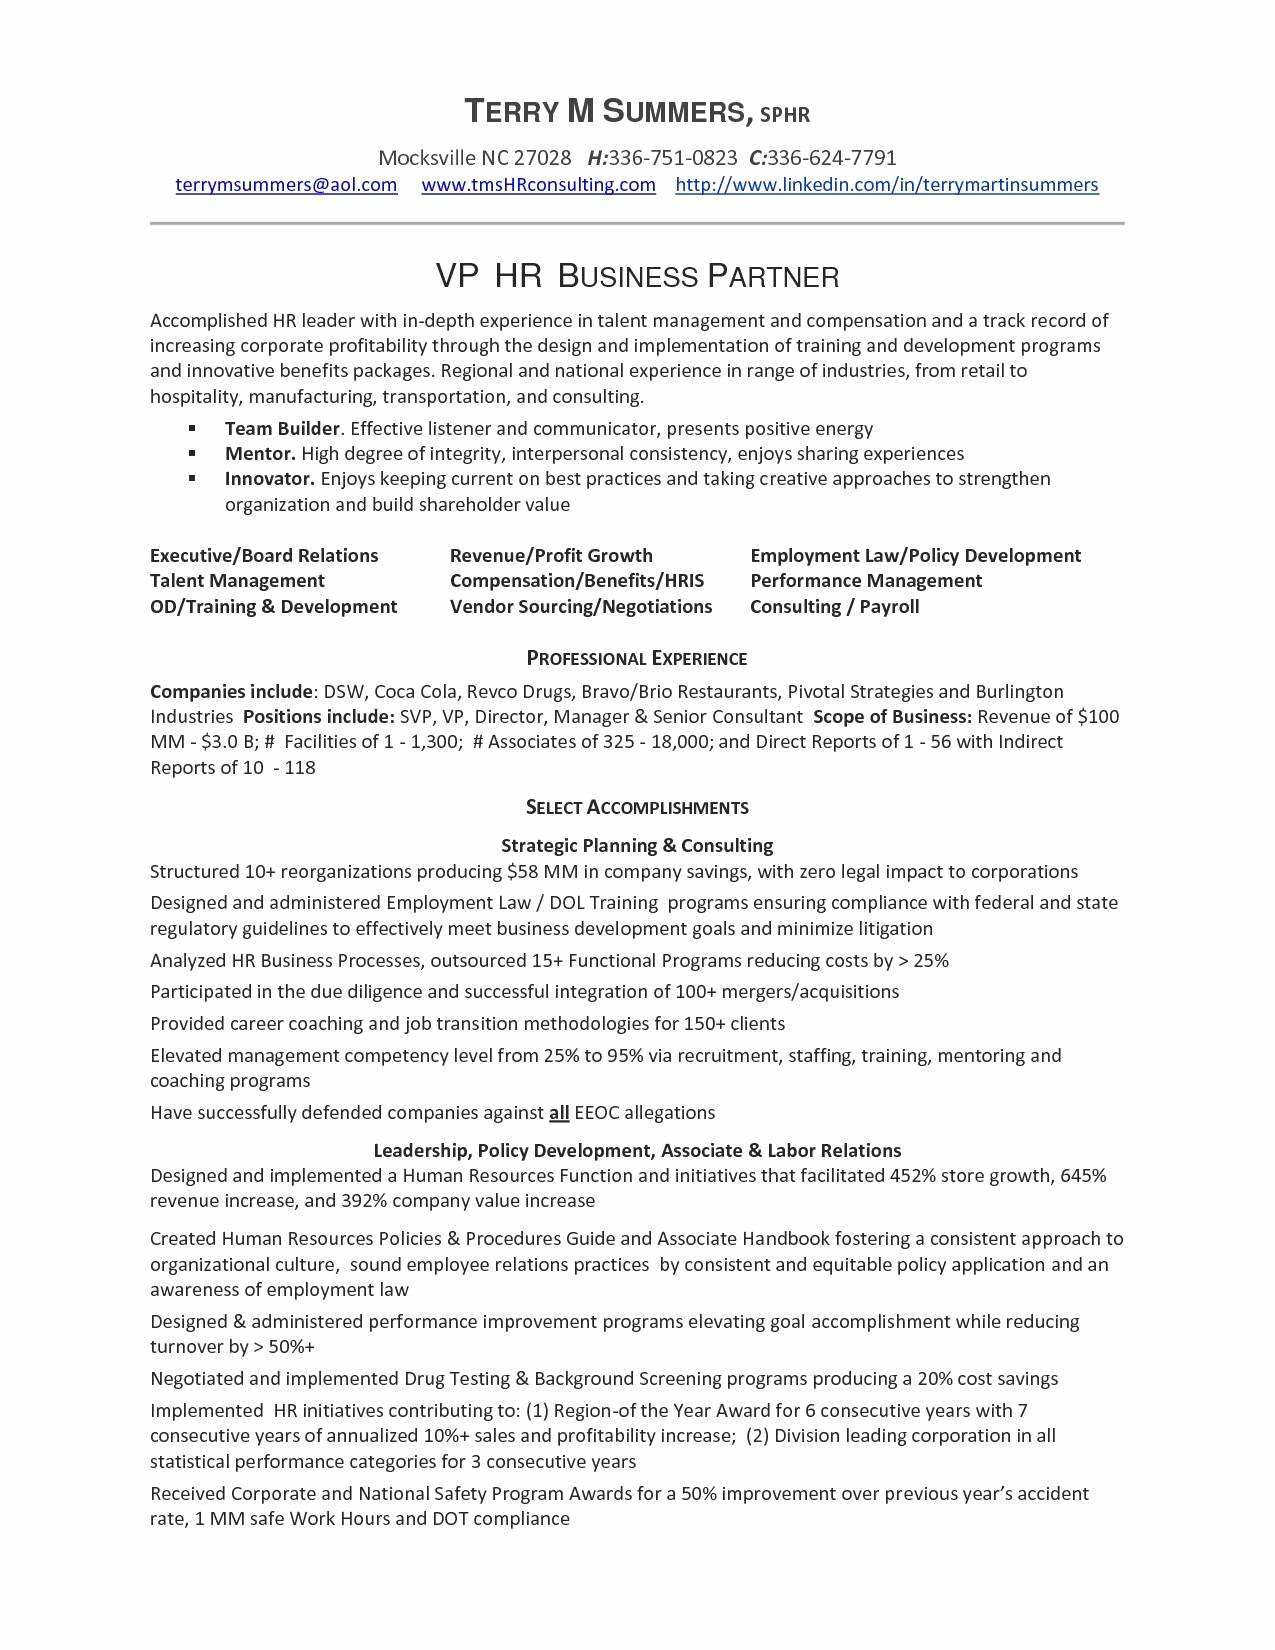 resume samples for self employed individuals lovely sample job resume luxury self employed resume new luxury examples